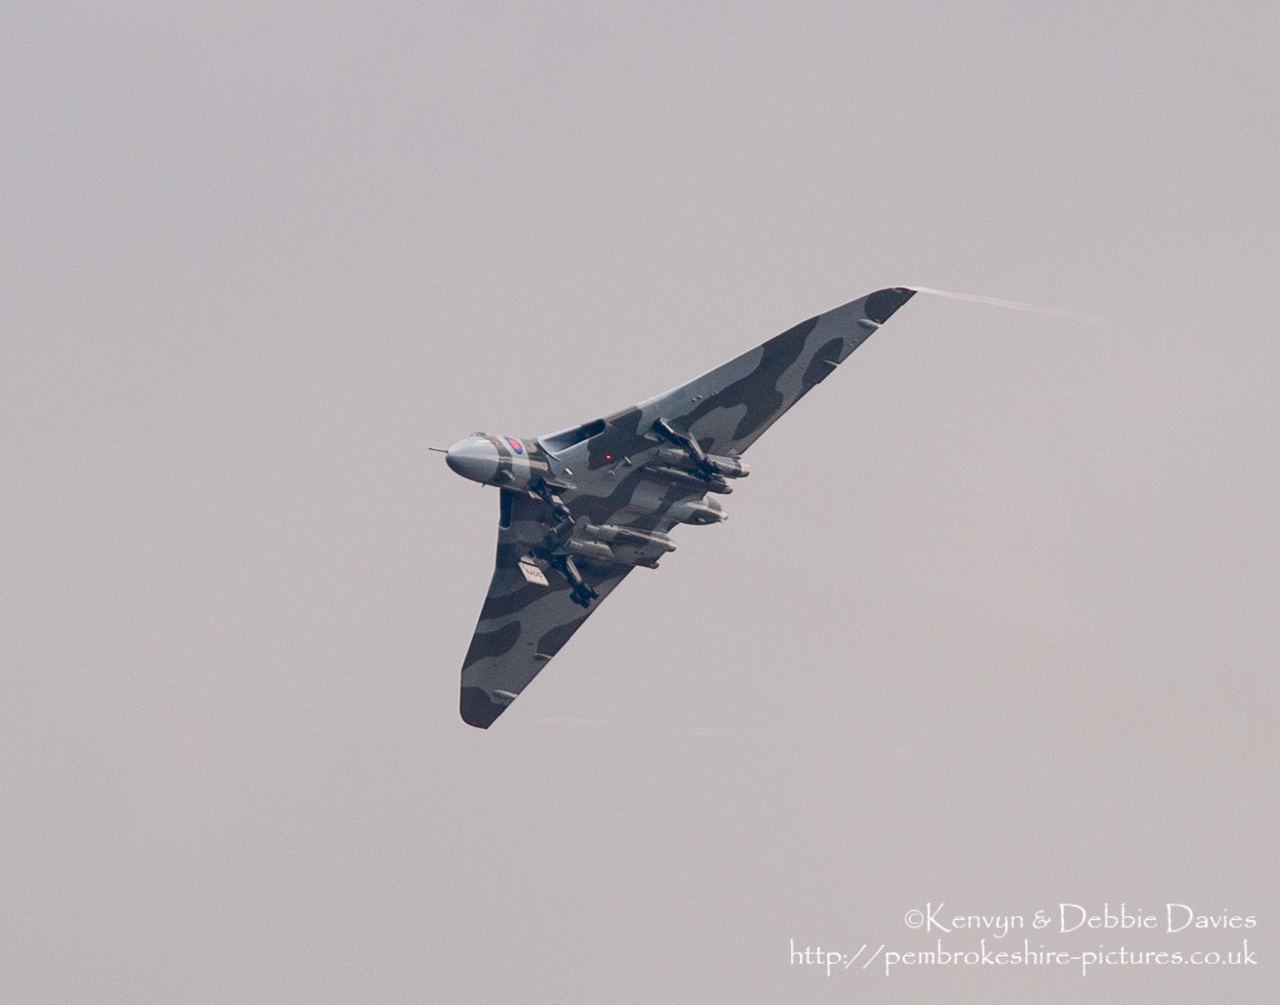 The Spirit Of Great Britain is the only airworthy example of the 134 Avro Vulcan V bombers that were operated by the Royal Air Force from 1953 until 1984. Vulcan XH558 served with the RAF between 1960 and 1985 in the bomber, maritime reconnaissance and air-to-air refuelling roles. The RAF operated XH558 as a display aircraft from 1986 until 1992, when budget cuts forced its retirement.<br/><br/>It is presently operated by the Vulcan to the Sky Trust as a display aircraft, funded entirely by charitable donations and the UK Lottery's Heritage Fund.[1] It is registered with the United Kingdom Civil Aviation Authority as G-VLCN but has an exemption to fly in Royal Air Force markings as XH558.